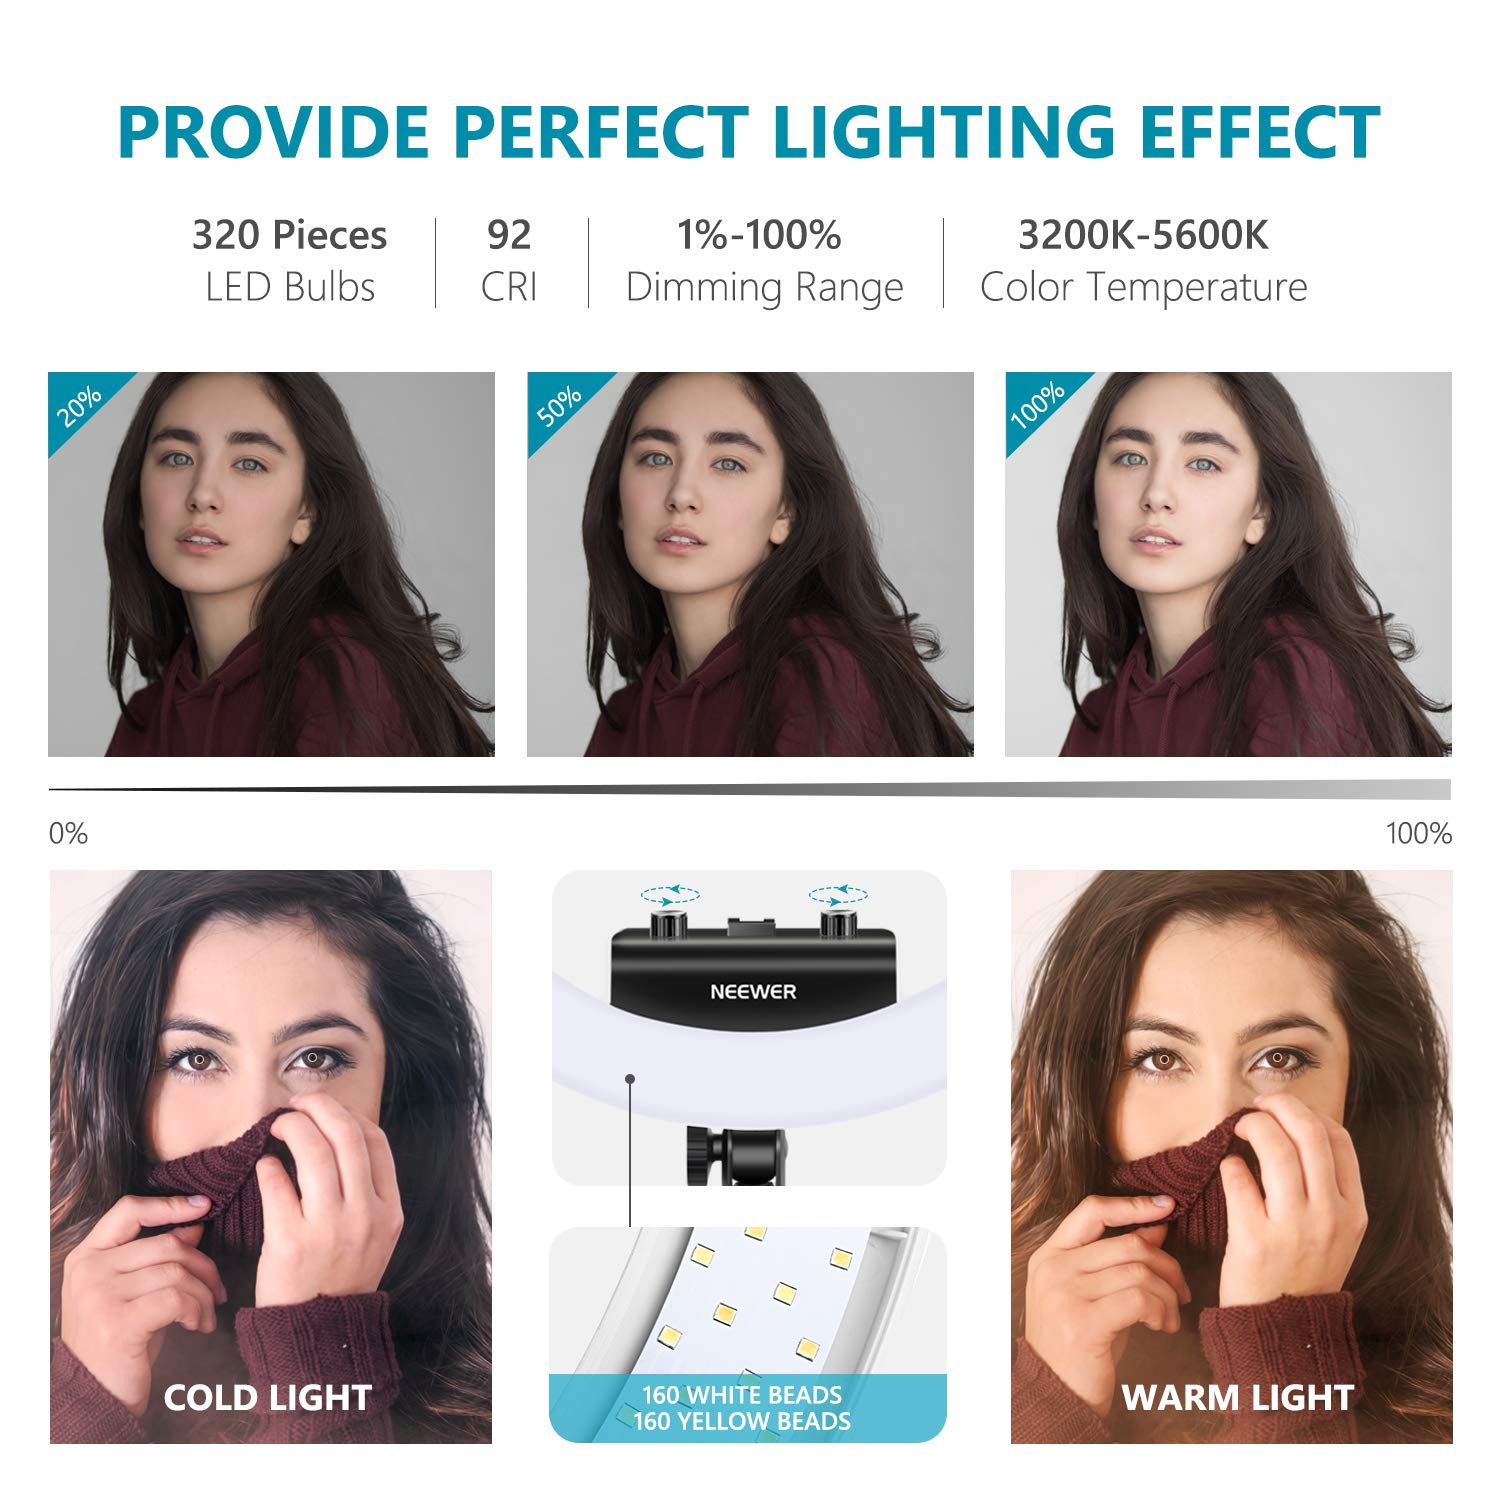 Neewer Ring Light Kit [Upgraded Version-1.8cm Ultra Slim] - 18 inches, 3200-5600K, Dimmable LED Ring Light with Light Stand, Rotatable Phone Holder, Hot Shoe Adapter for Portrait Makeup Video Shooting by Neewer (Image #3)